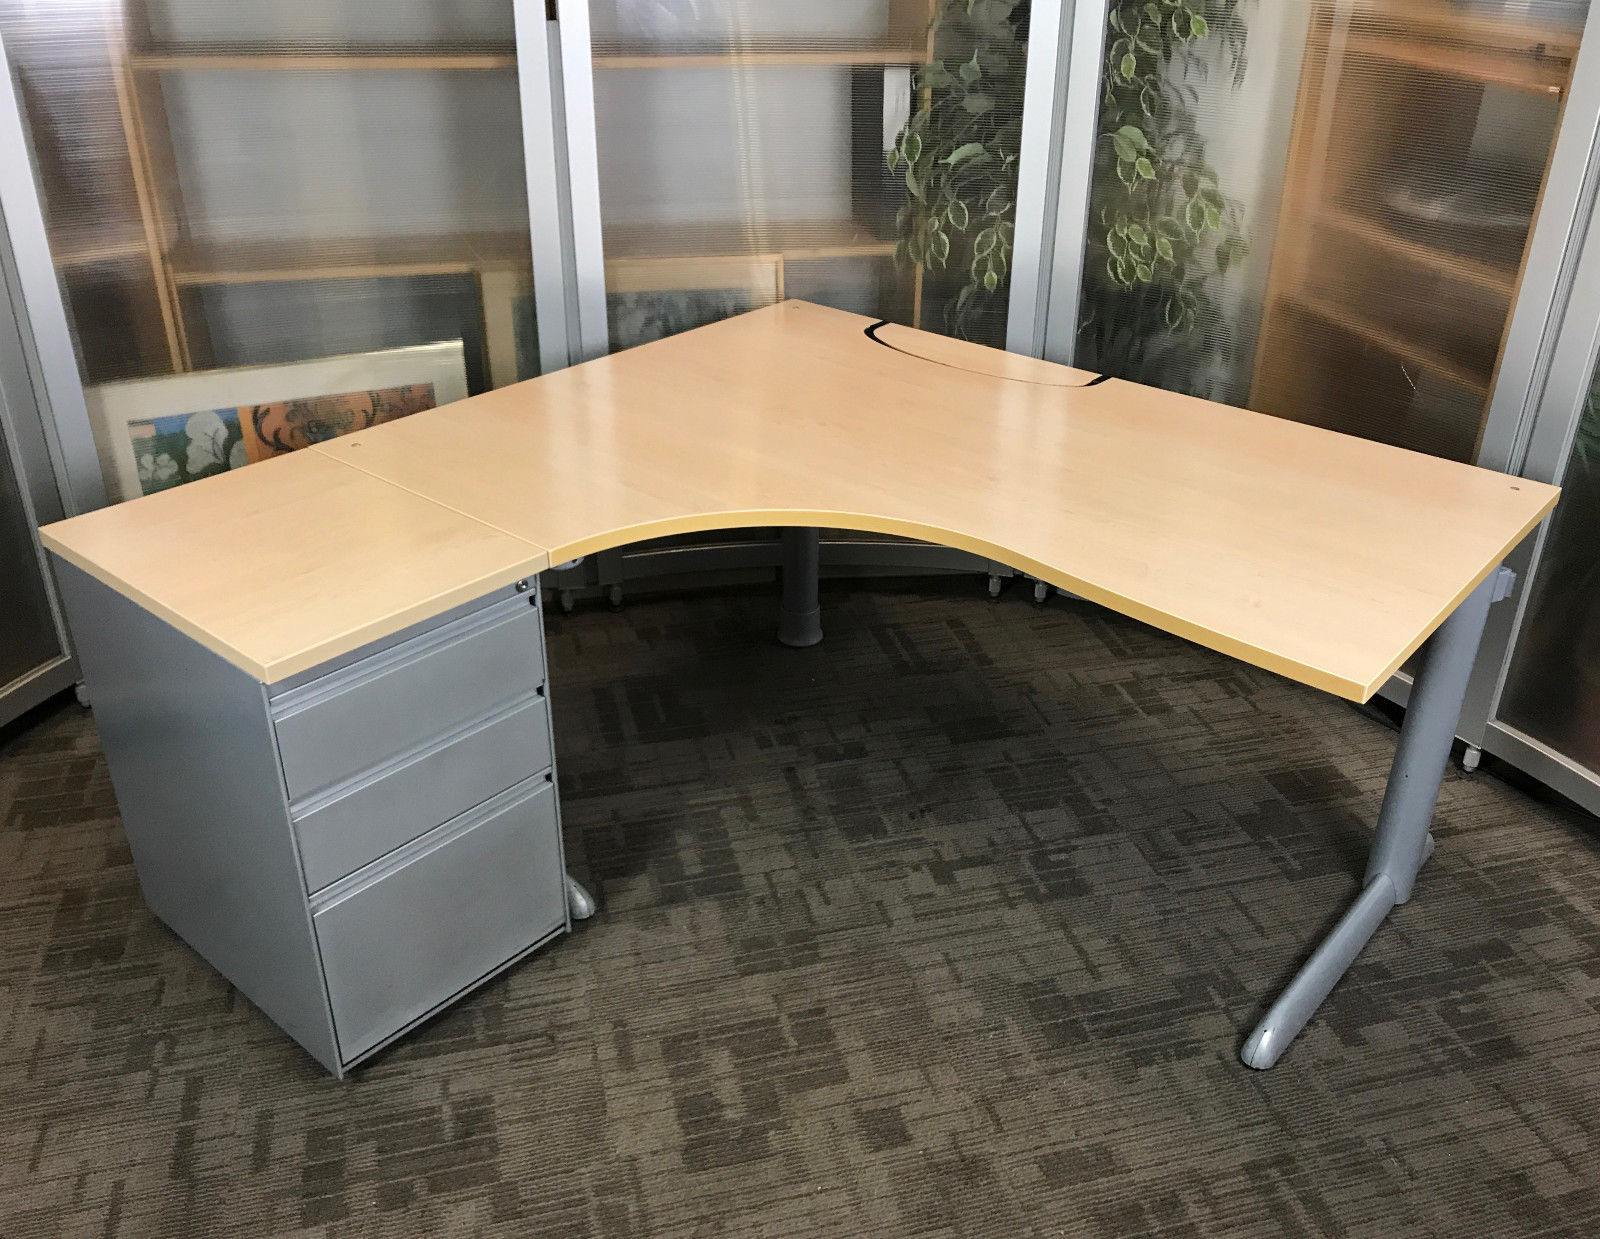 office corner desks. Steelcase L-Shape Desk | Office Corner Desks High 3 Drawer Pedestal L E